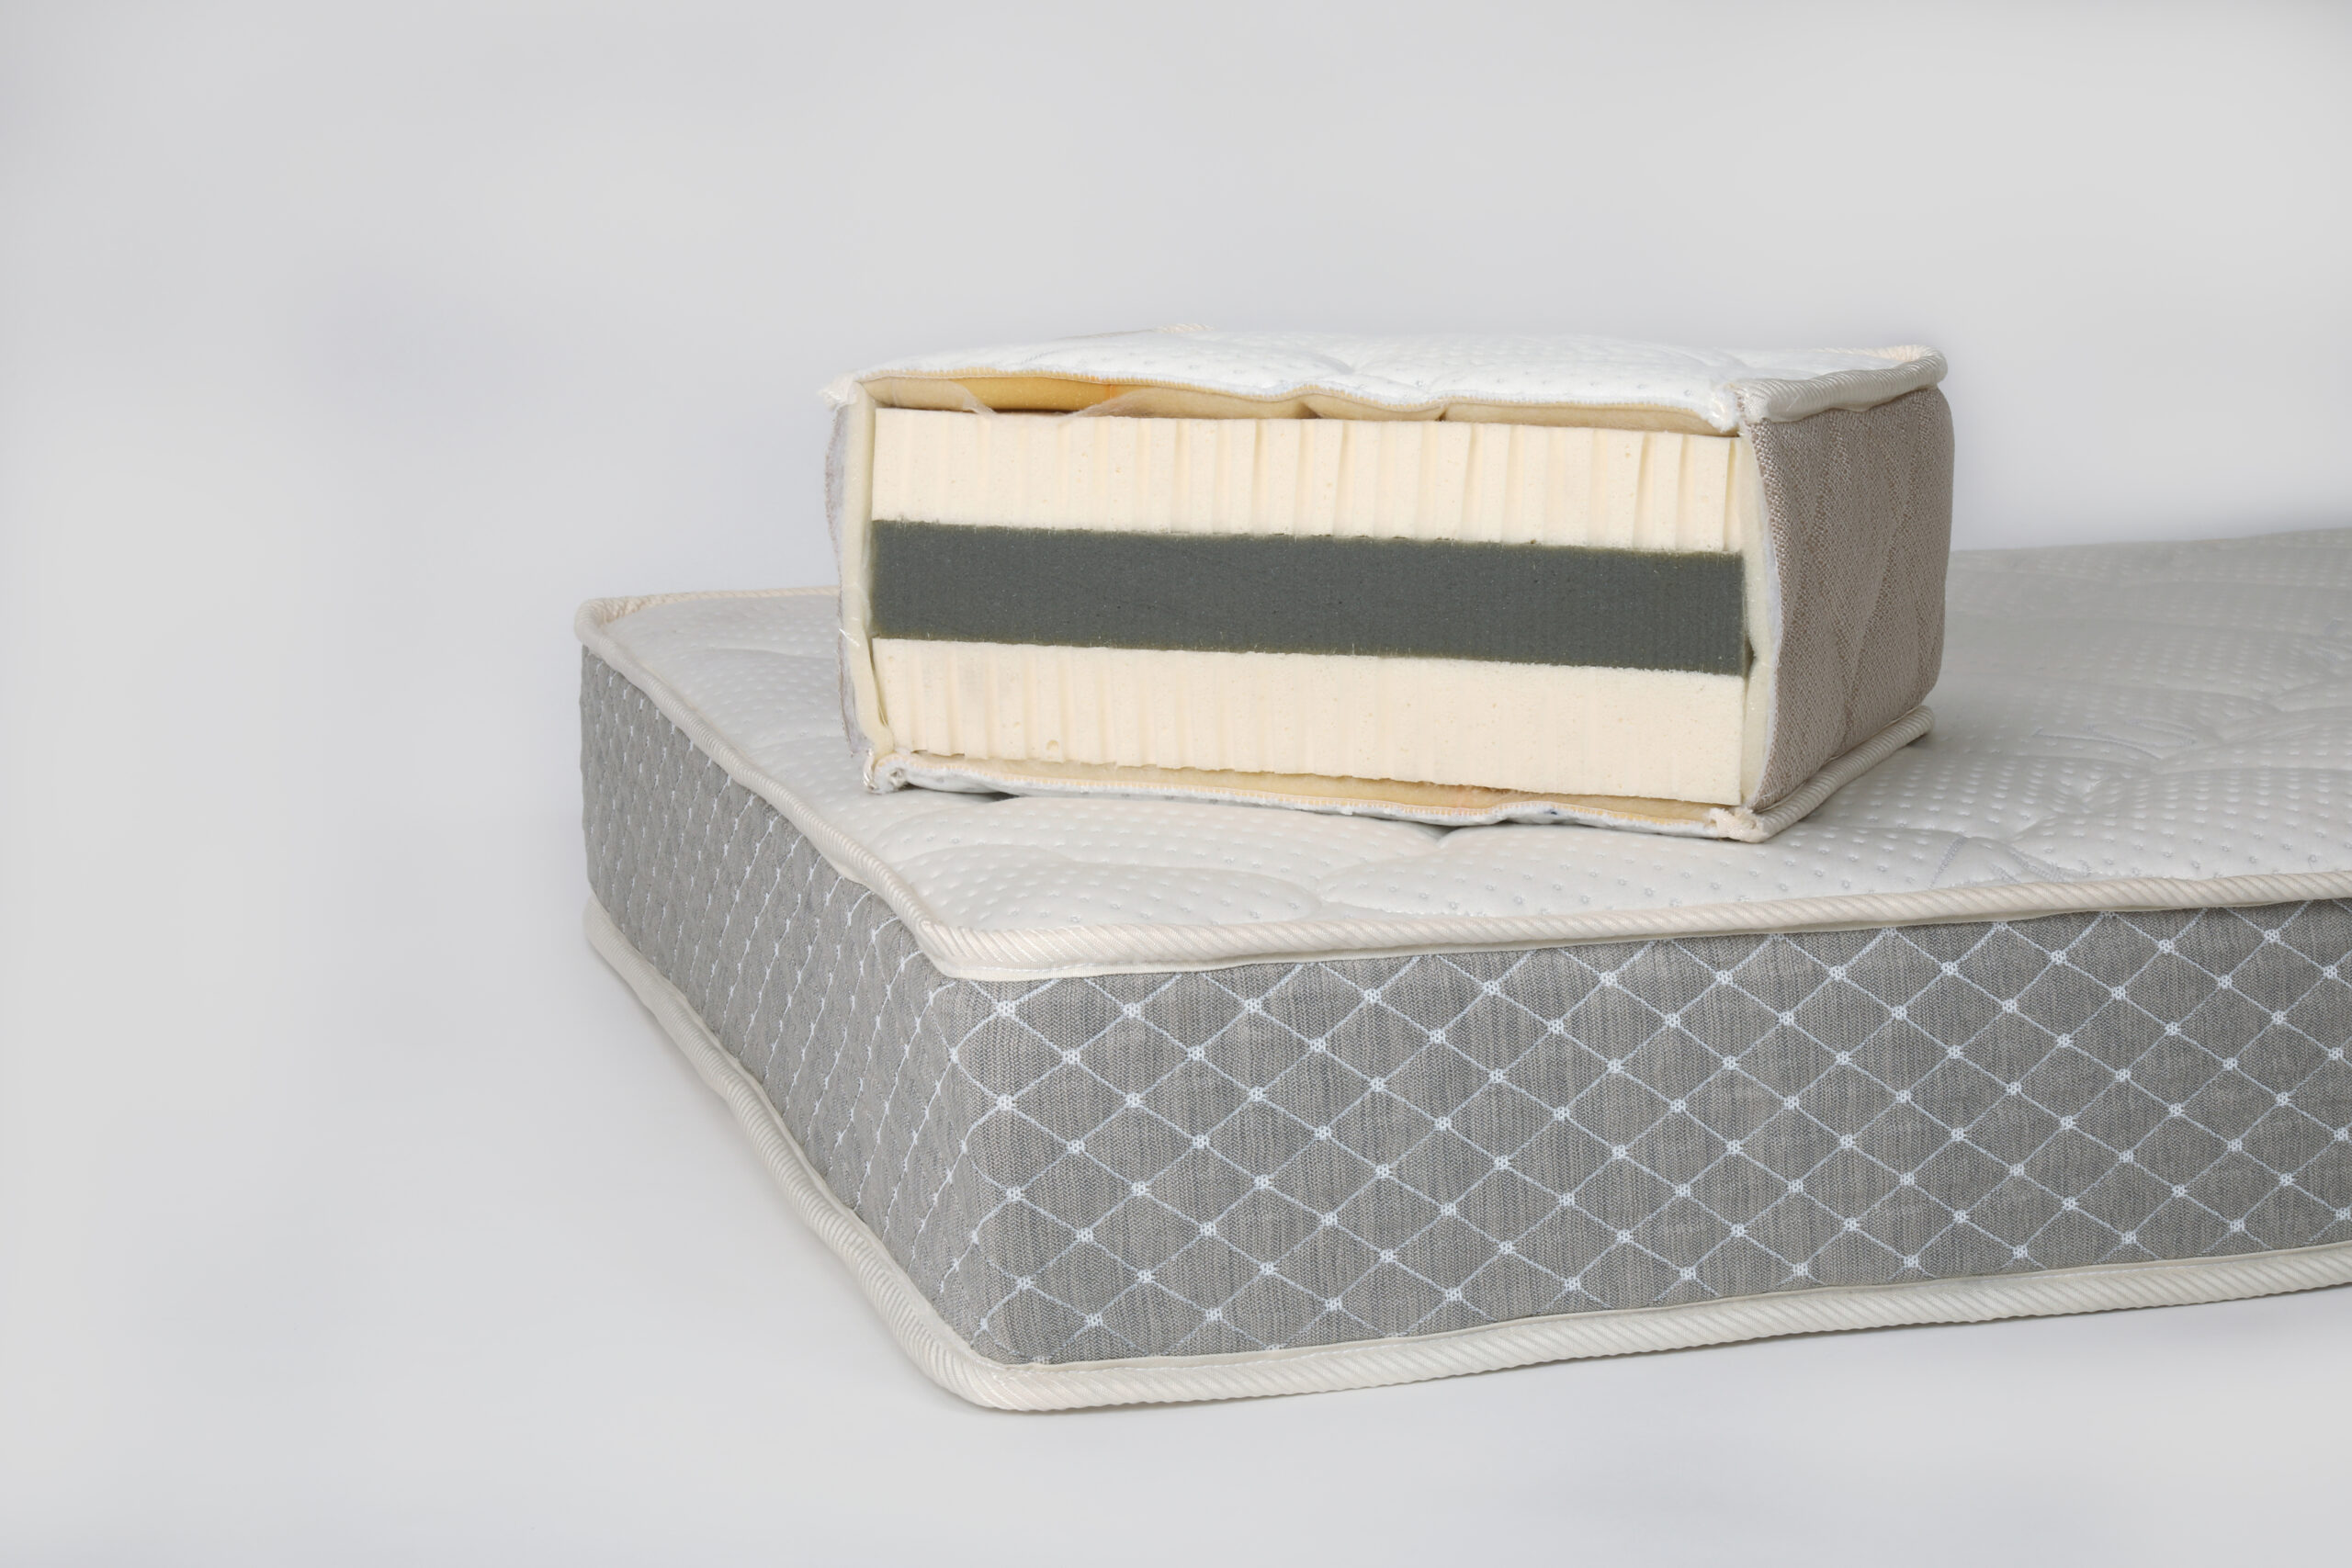 Latexan latex mattress by NAM House of sleep (picture 2)